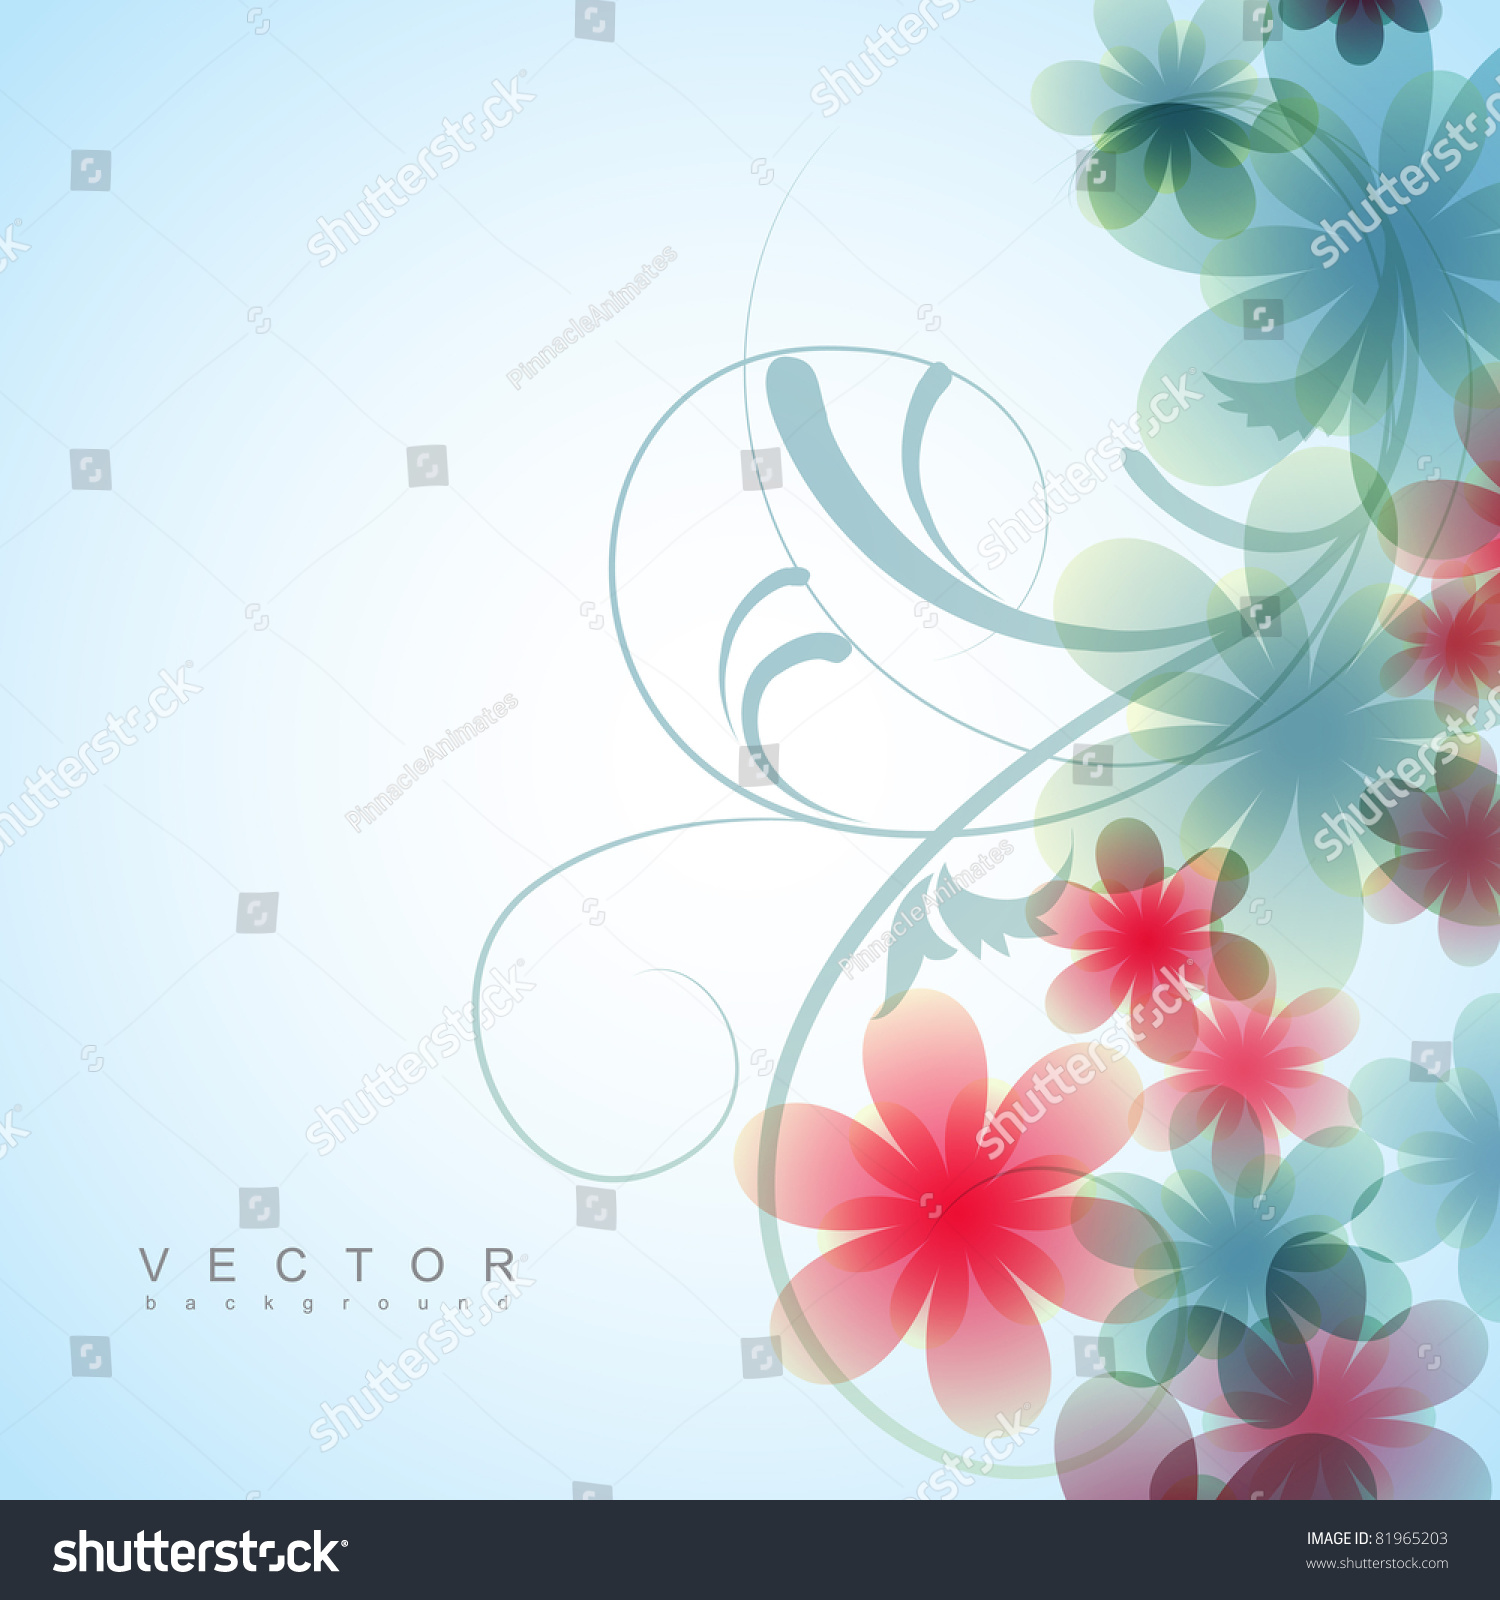 Beautiful vector flower background design stock vector 81965203 shutterstock - Photo image design ...